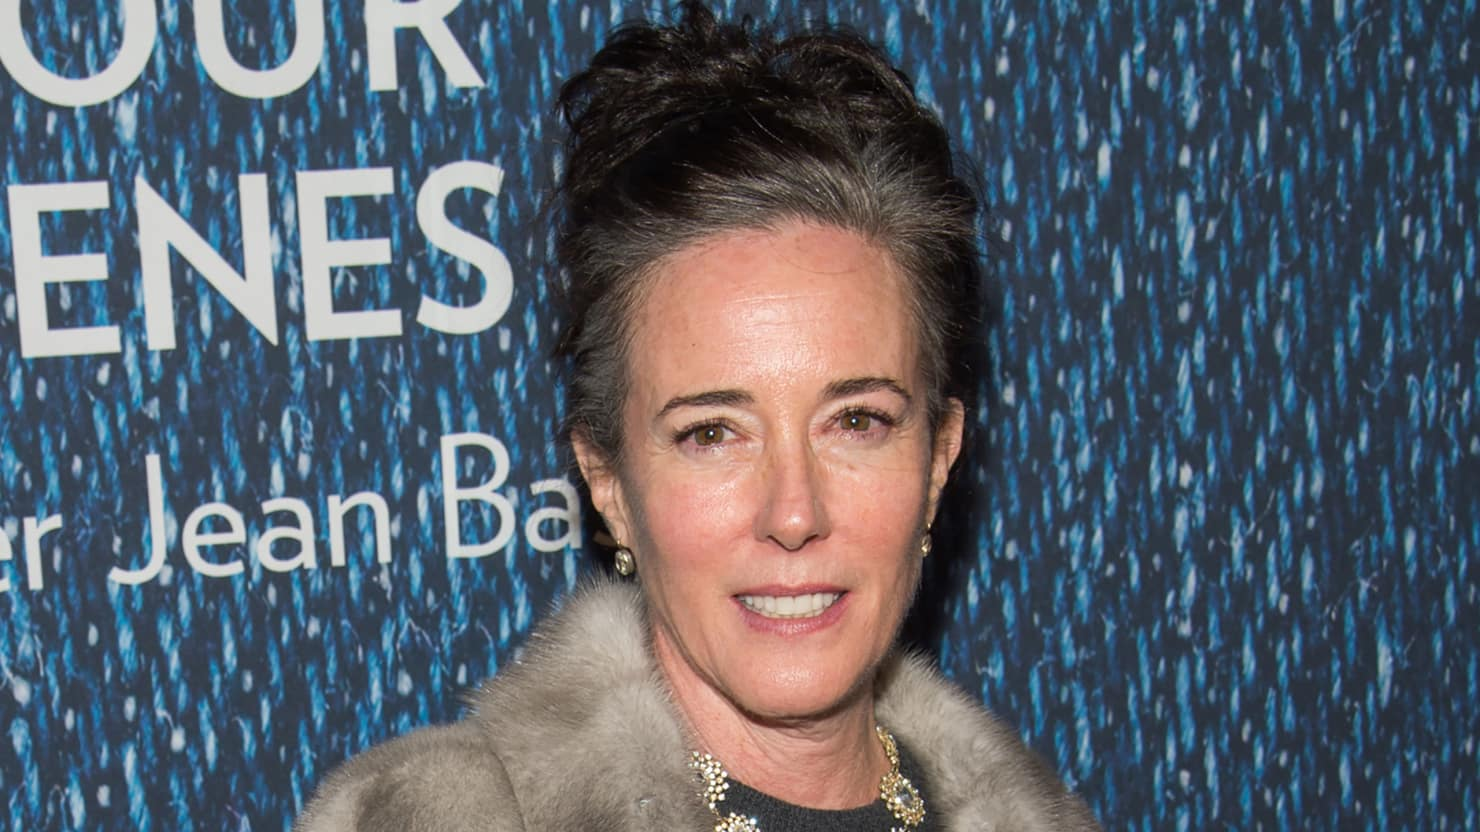 How Kate Spade's Suicide Exemplifies the State of Women's Health - The recent death of fashion icon Kate Spade alludes to the climbing suicide statistics among women. In the past 20 years, suicide rates among women aged 45-64 has increased 63% - the age that women, such as Spade, were at the peak of their careers. There is also evidence to show that women in certain industries - dentists, laborers, doctors, and artists, like Spade - are more likely to exhibit mental health issues, including suicidal thoughts.